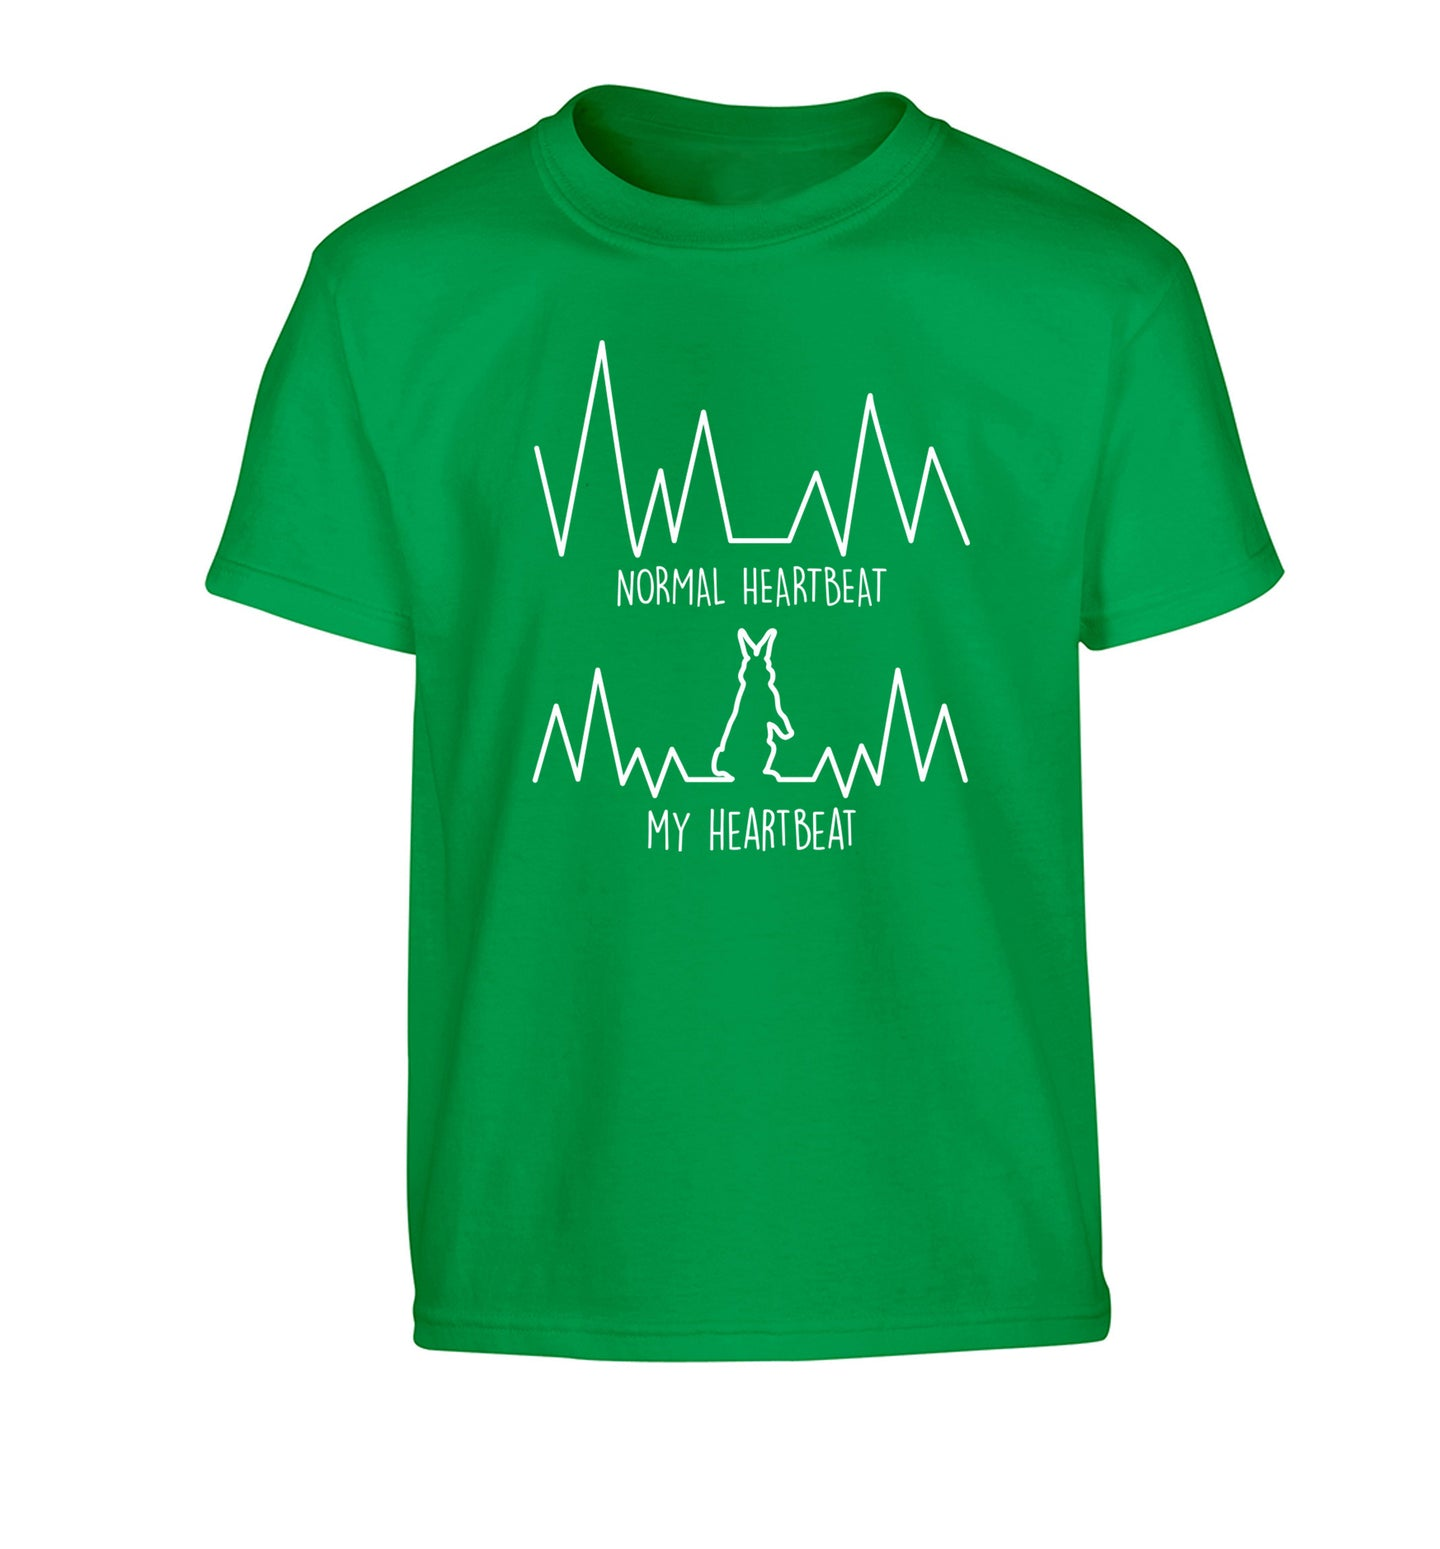 Normal heartbeat, my heartbeat rabbit lover Children's green Tshirt 12-14 Years